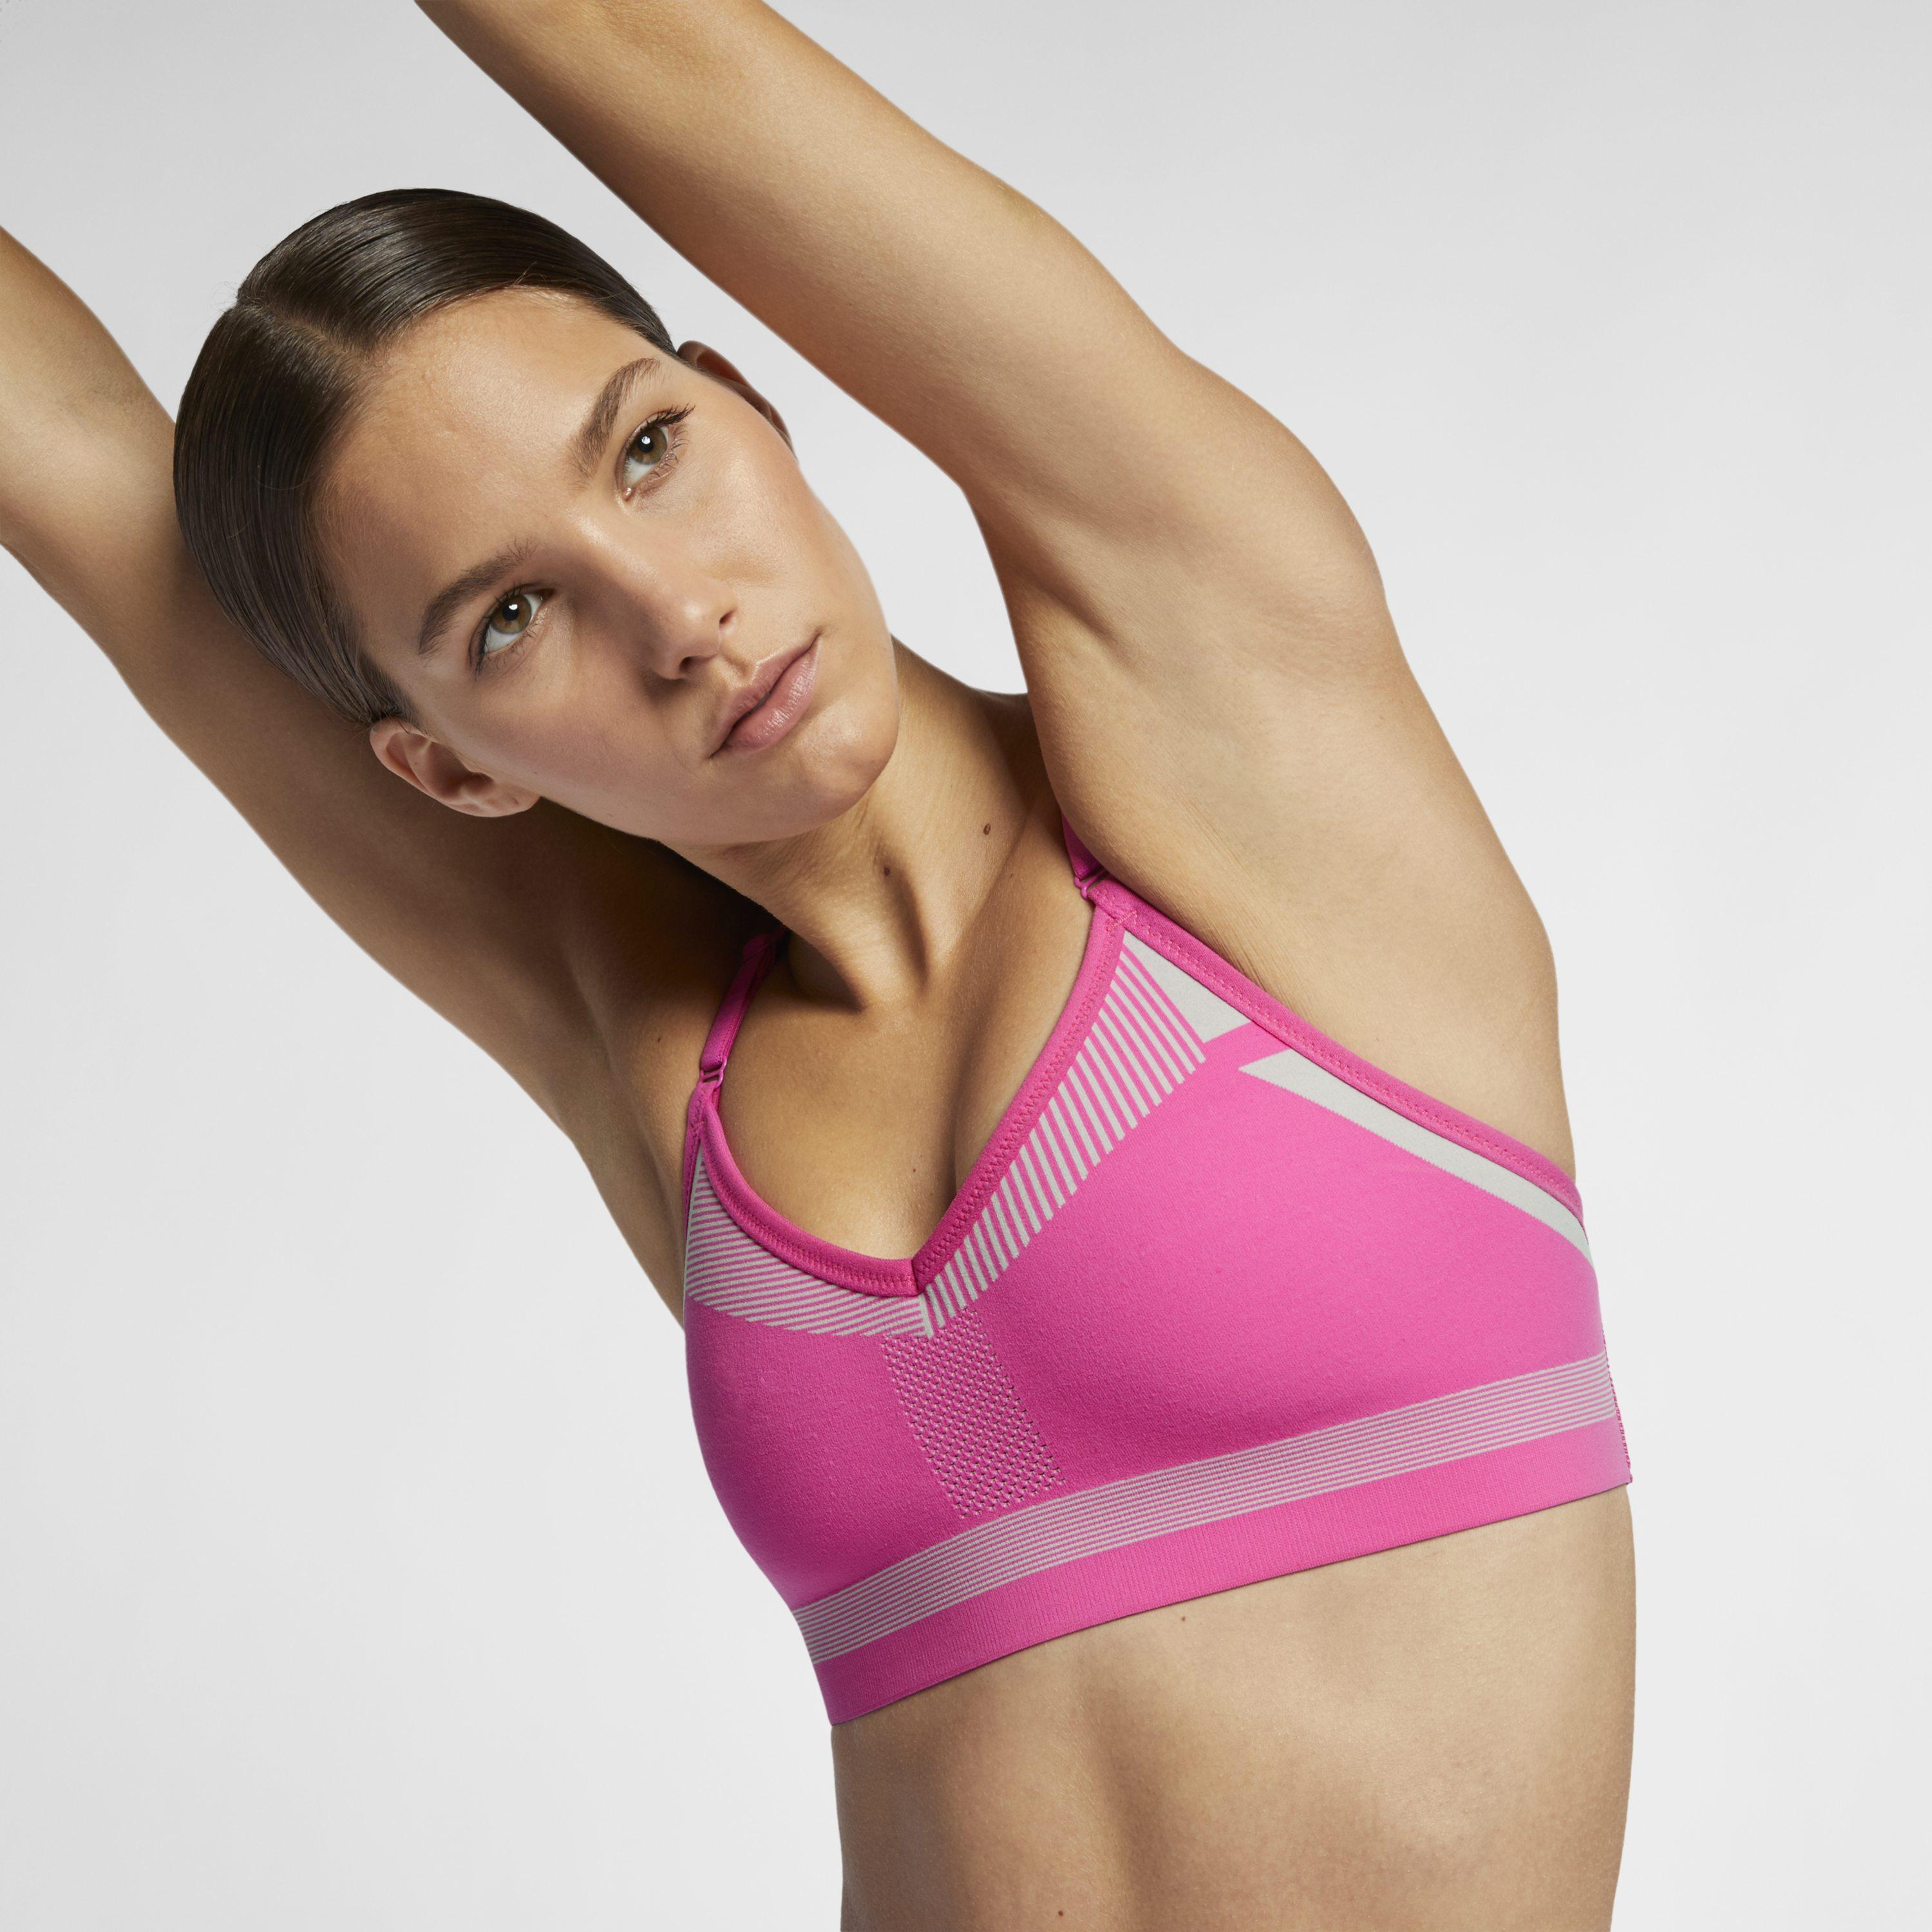 e5343e0d432 Nike Flyknit Indy Medium-support Sports Bra in Pink - Save 2% - Lyst